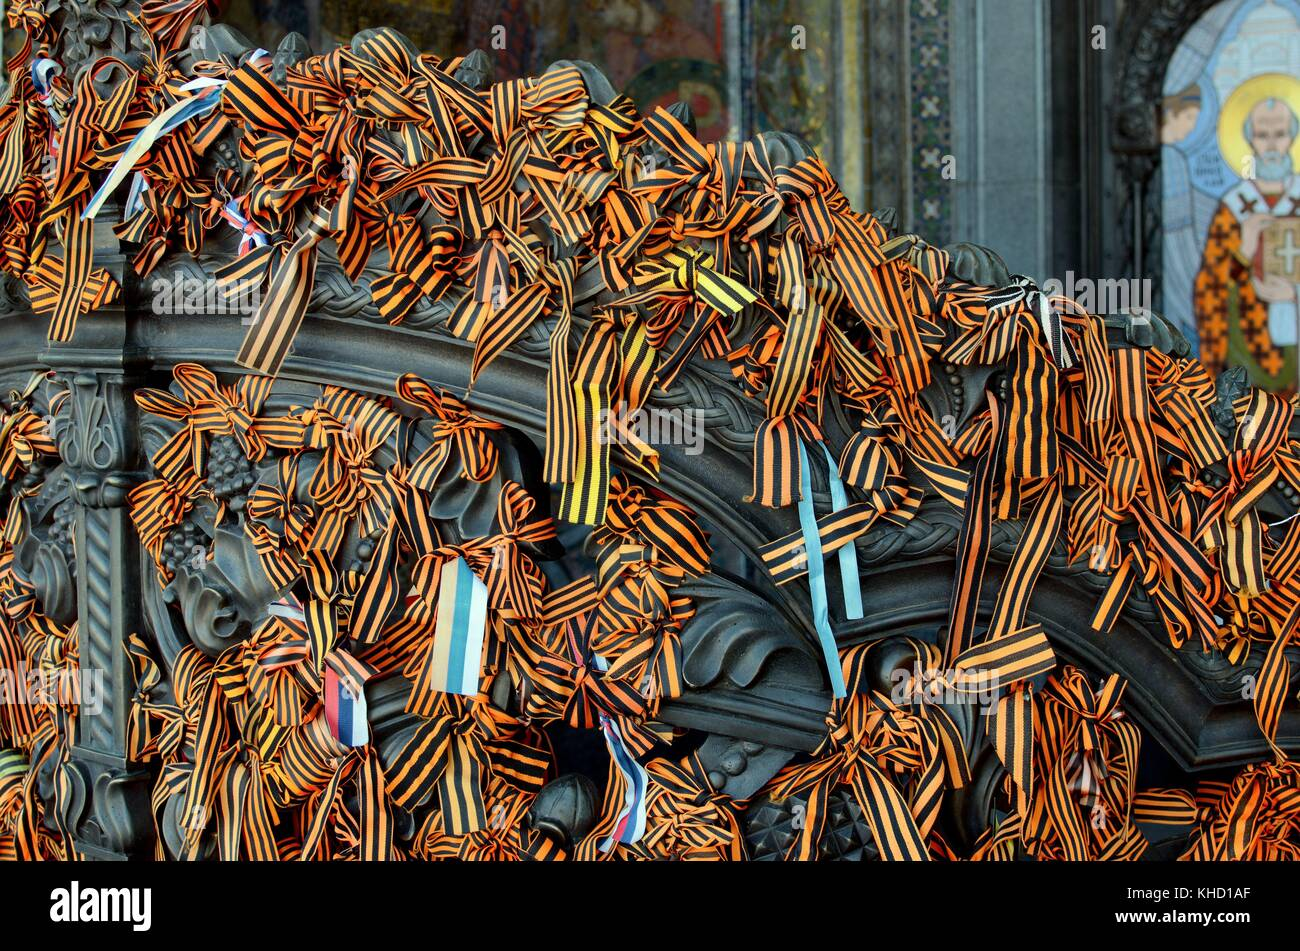 The ribbons on the gates of the Cathedral, put there by parishioners of the Church on Christian holidays - Stock Image